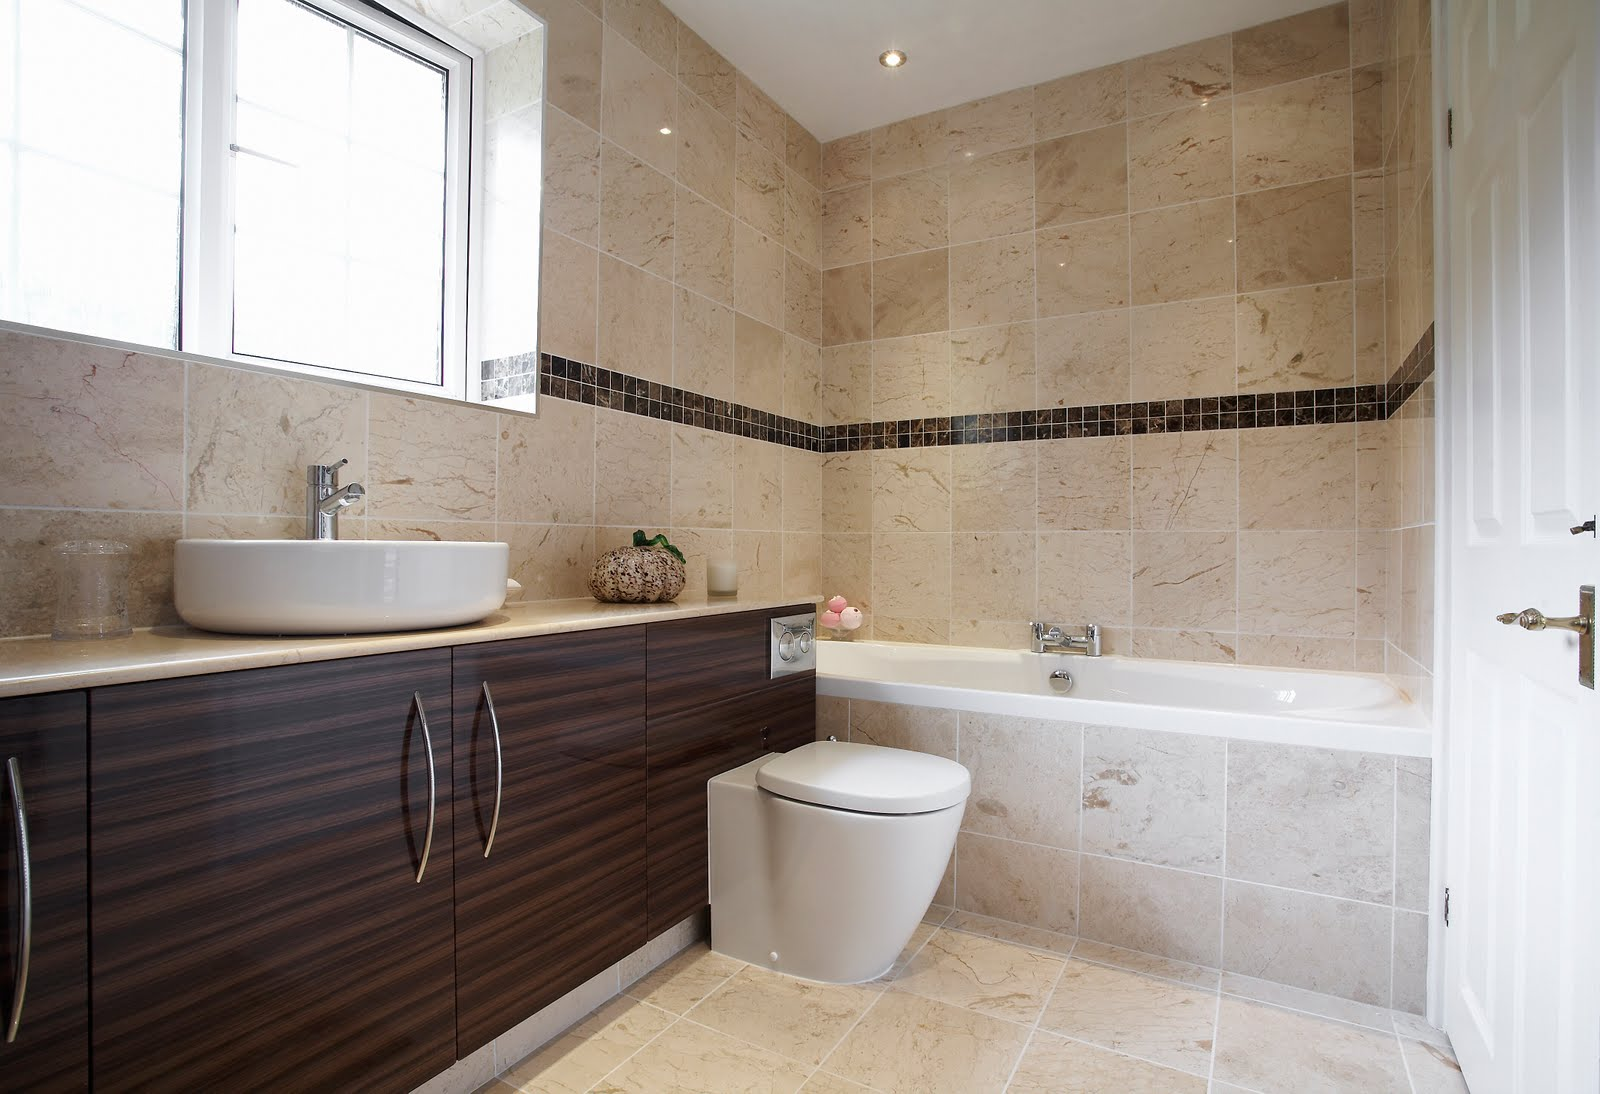 Cymru kitchens ltd cymru kitchens bathrooms - Bathroom designs images ...